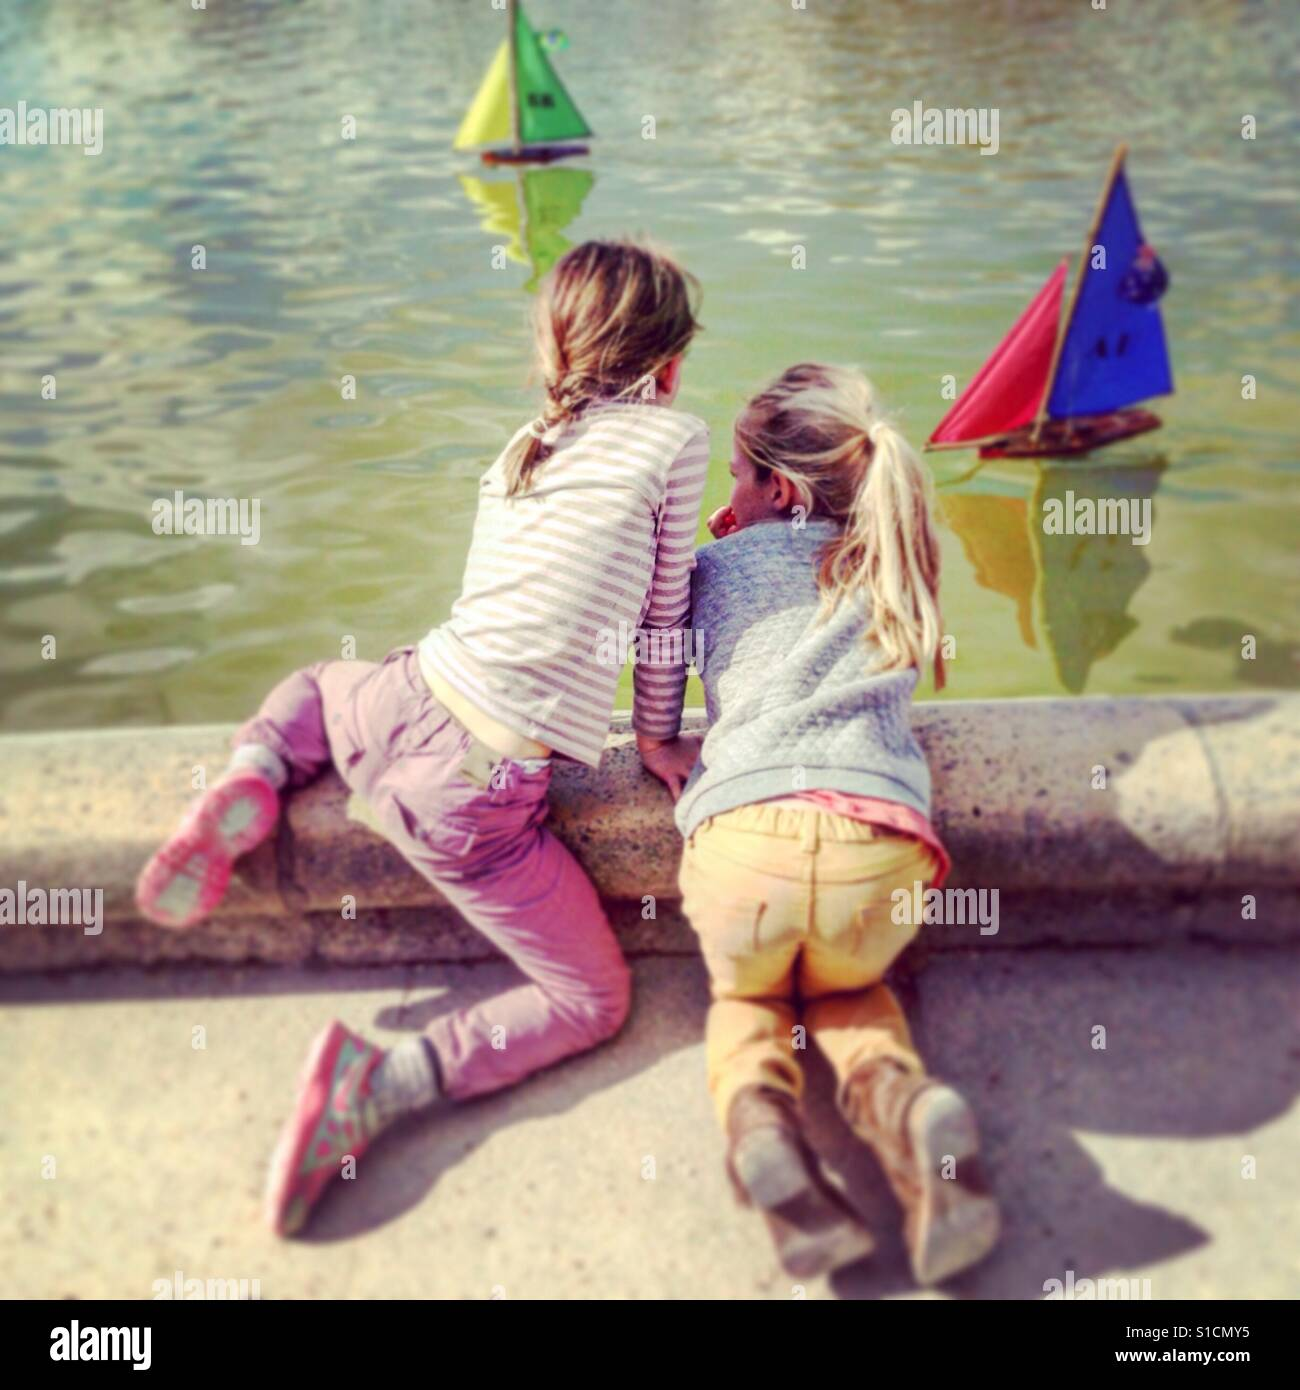 Girlfriends watch the toy boats at Luxembourg Park Paris, France. Stock Foto